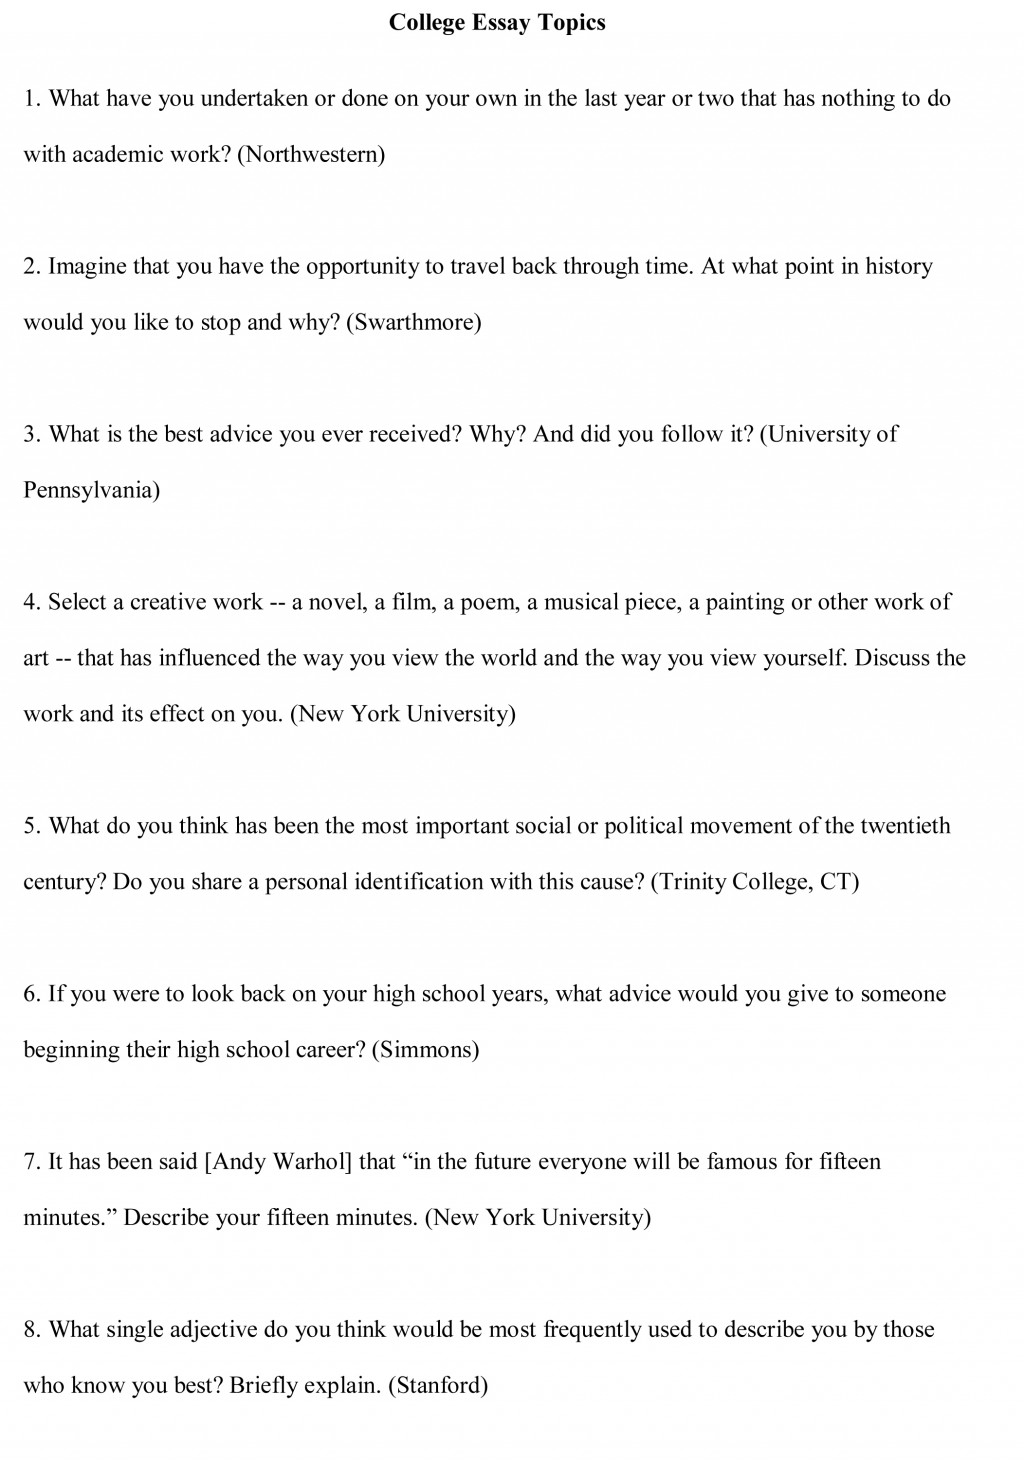 023 Free Essay Generator College Topics Sample1 Impressive Maker Online Best Conclusion Large